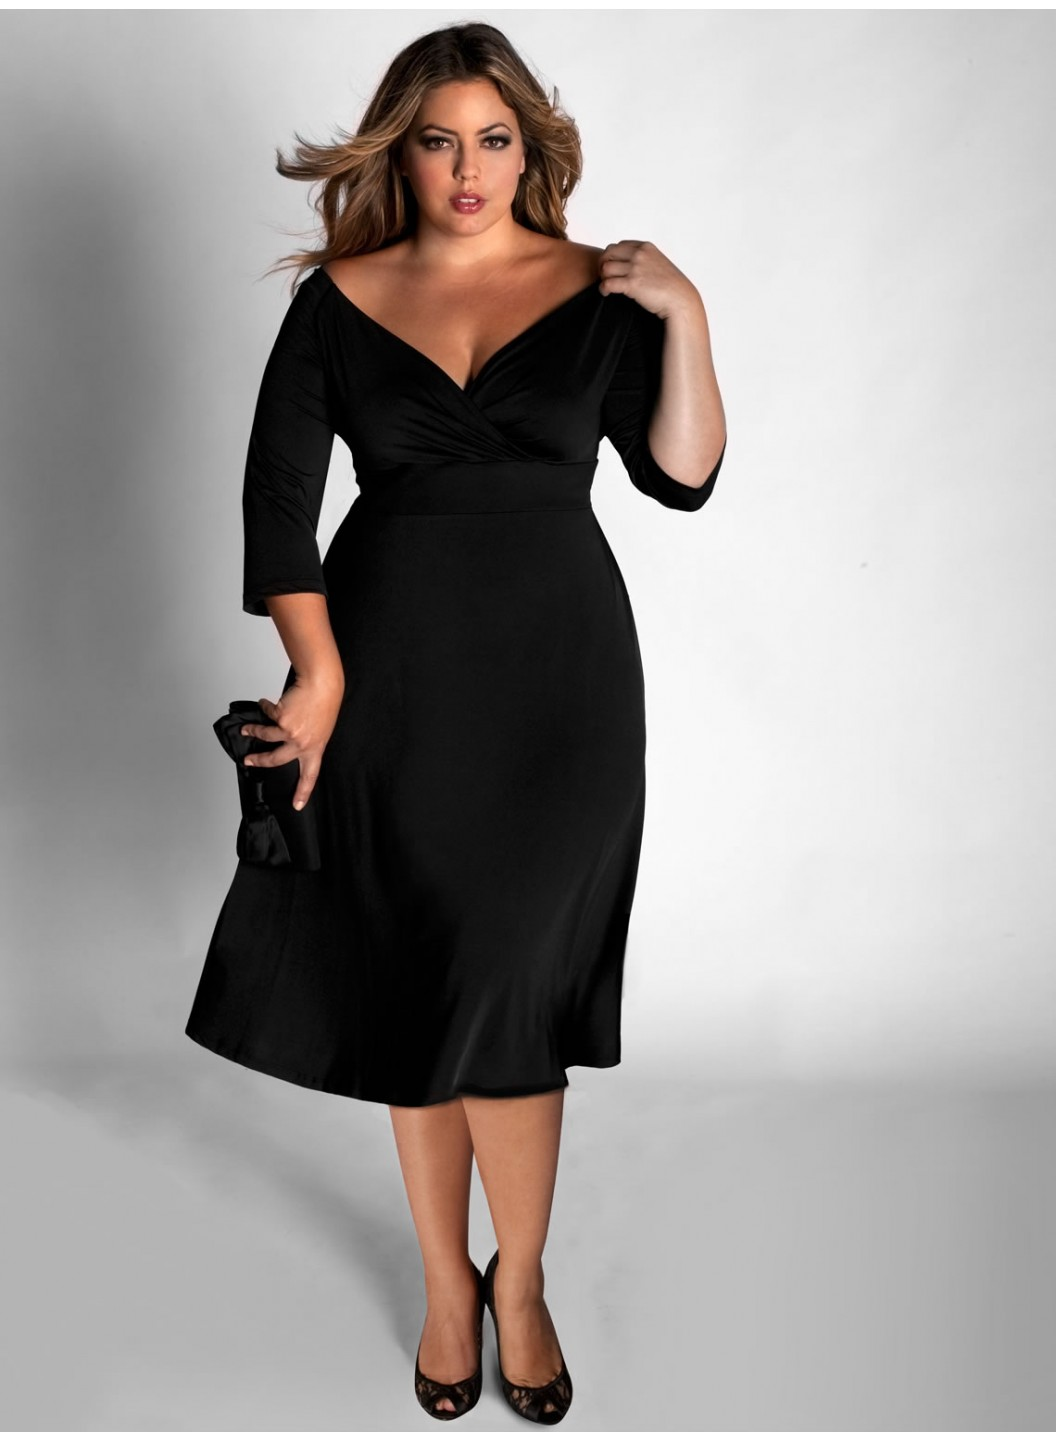 Online clothes for plus size